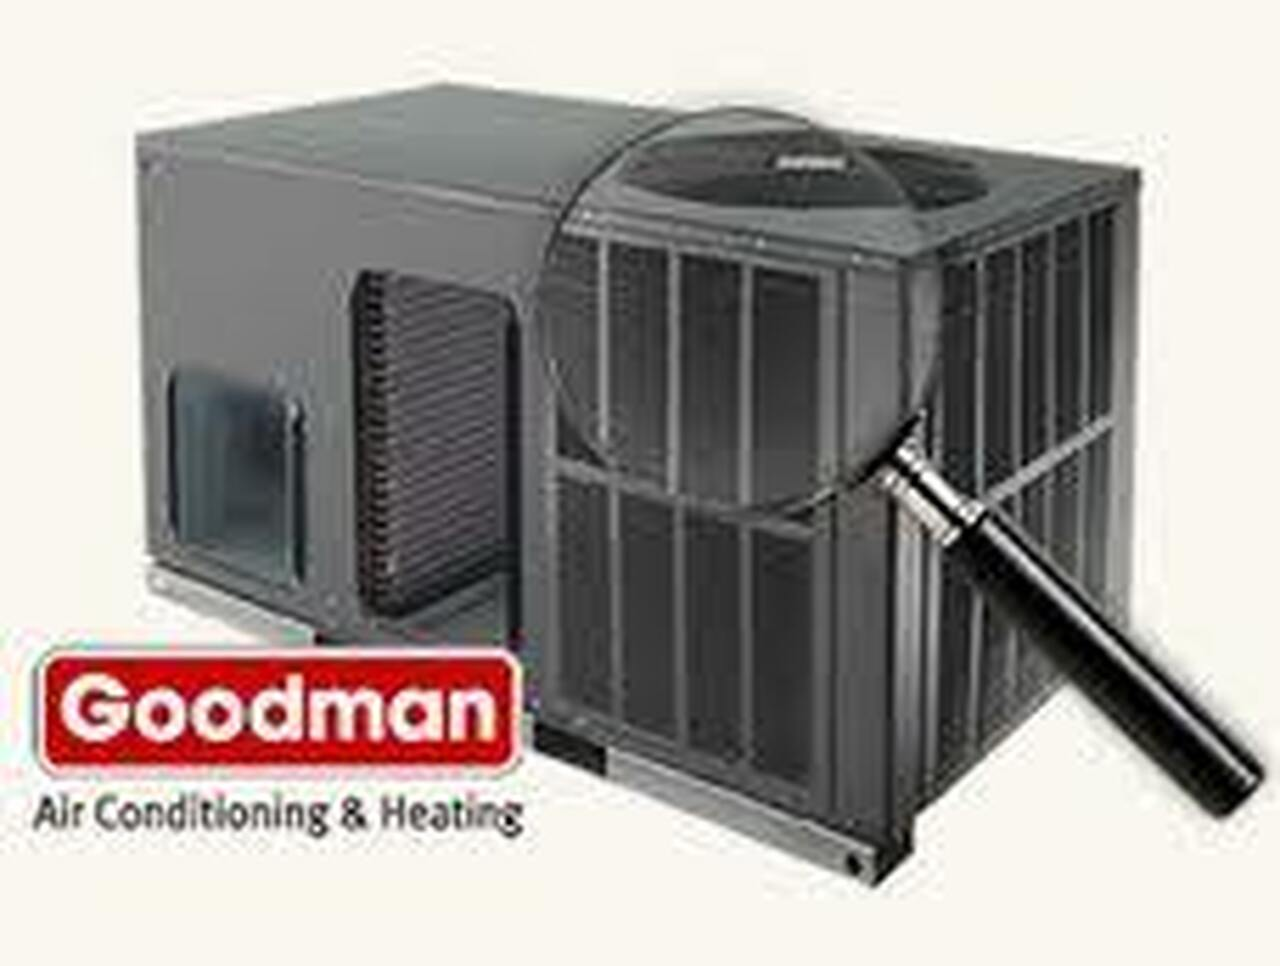 2 5 Ton Package Unit Goodman 2 1 2 2 5 Ton 14 Seer Package Air Conditioner